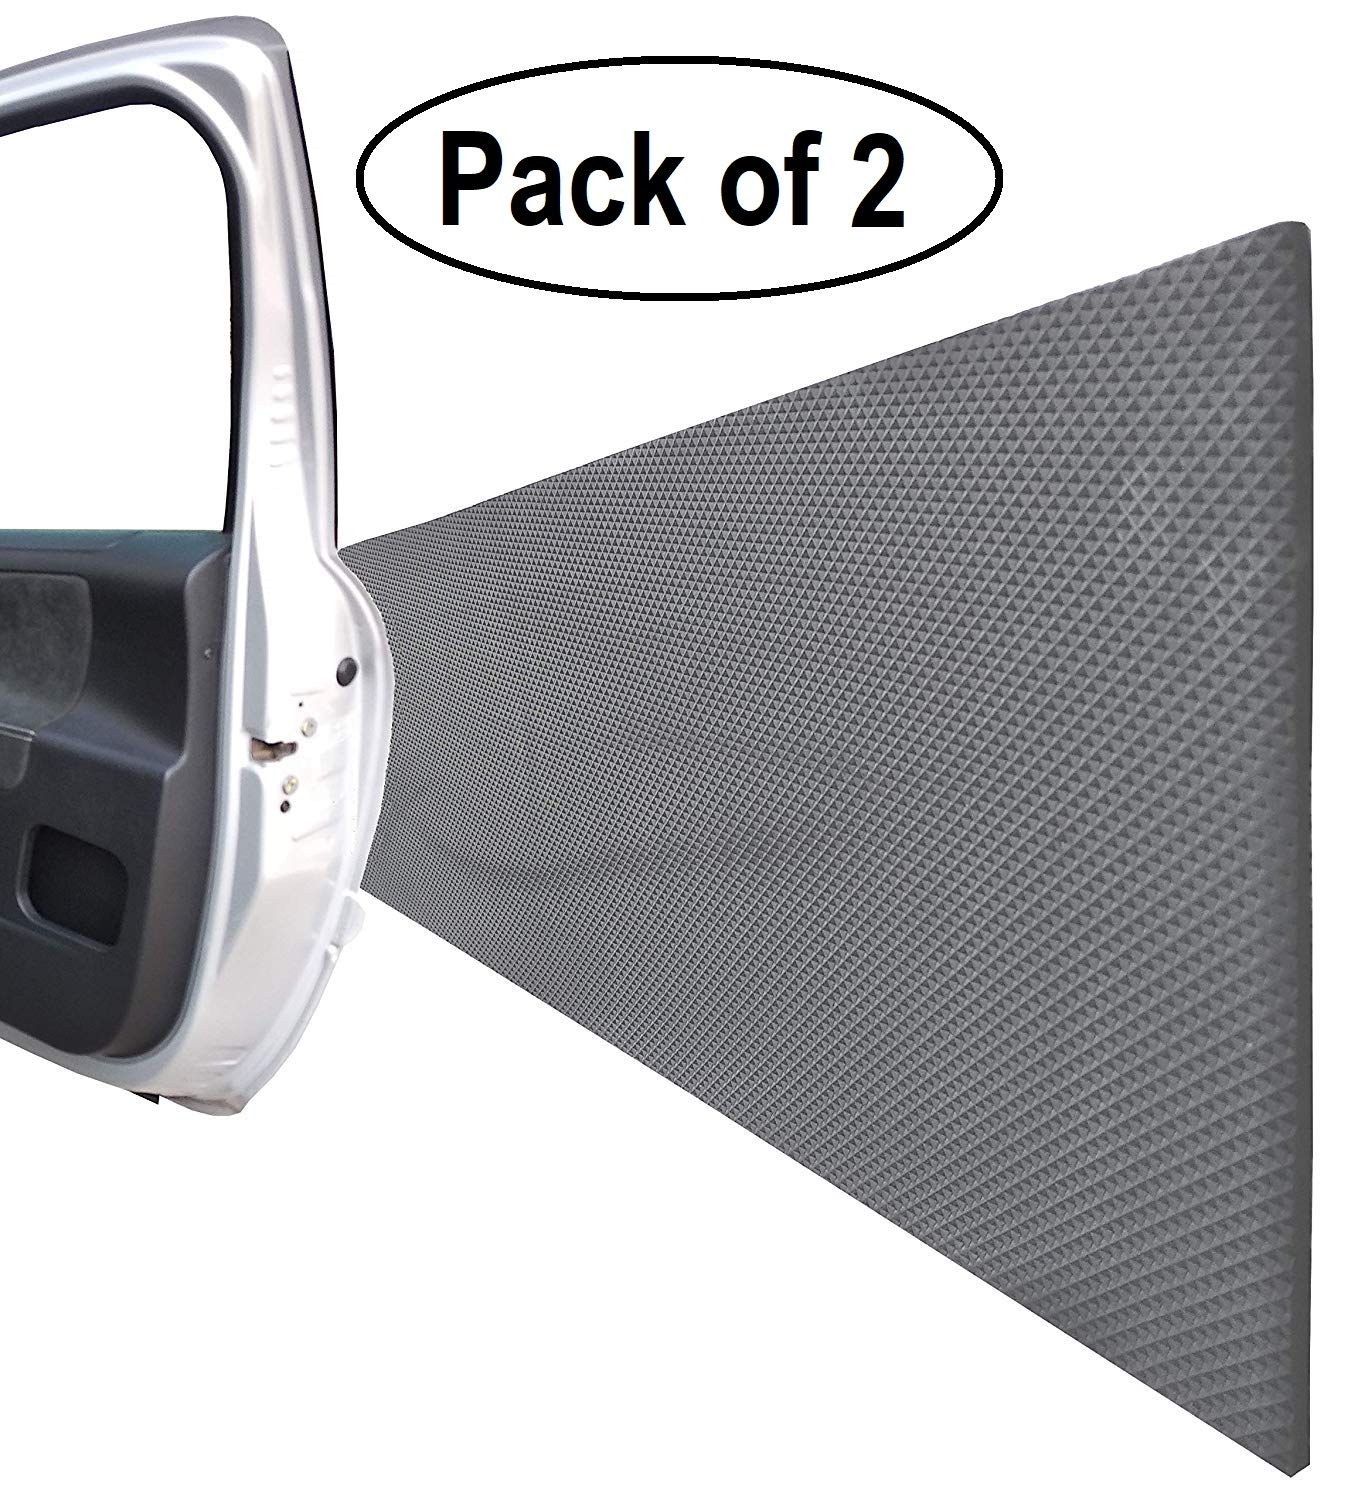 Garage Wall Protector for Car Doors, Self Adhesive and Thick Foam Guard Bumper, for Indoor or Outdoor use, Dimensions 79''x 8''x 0.2'', Black Color (Pack of 2) by SNS SAFETY LTD (Image #1)